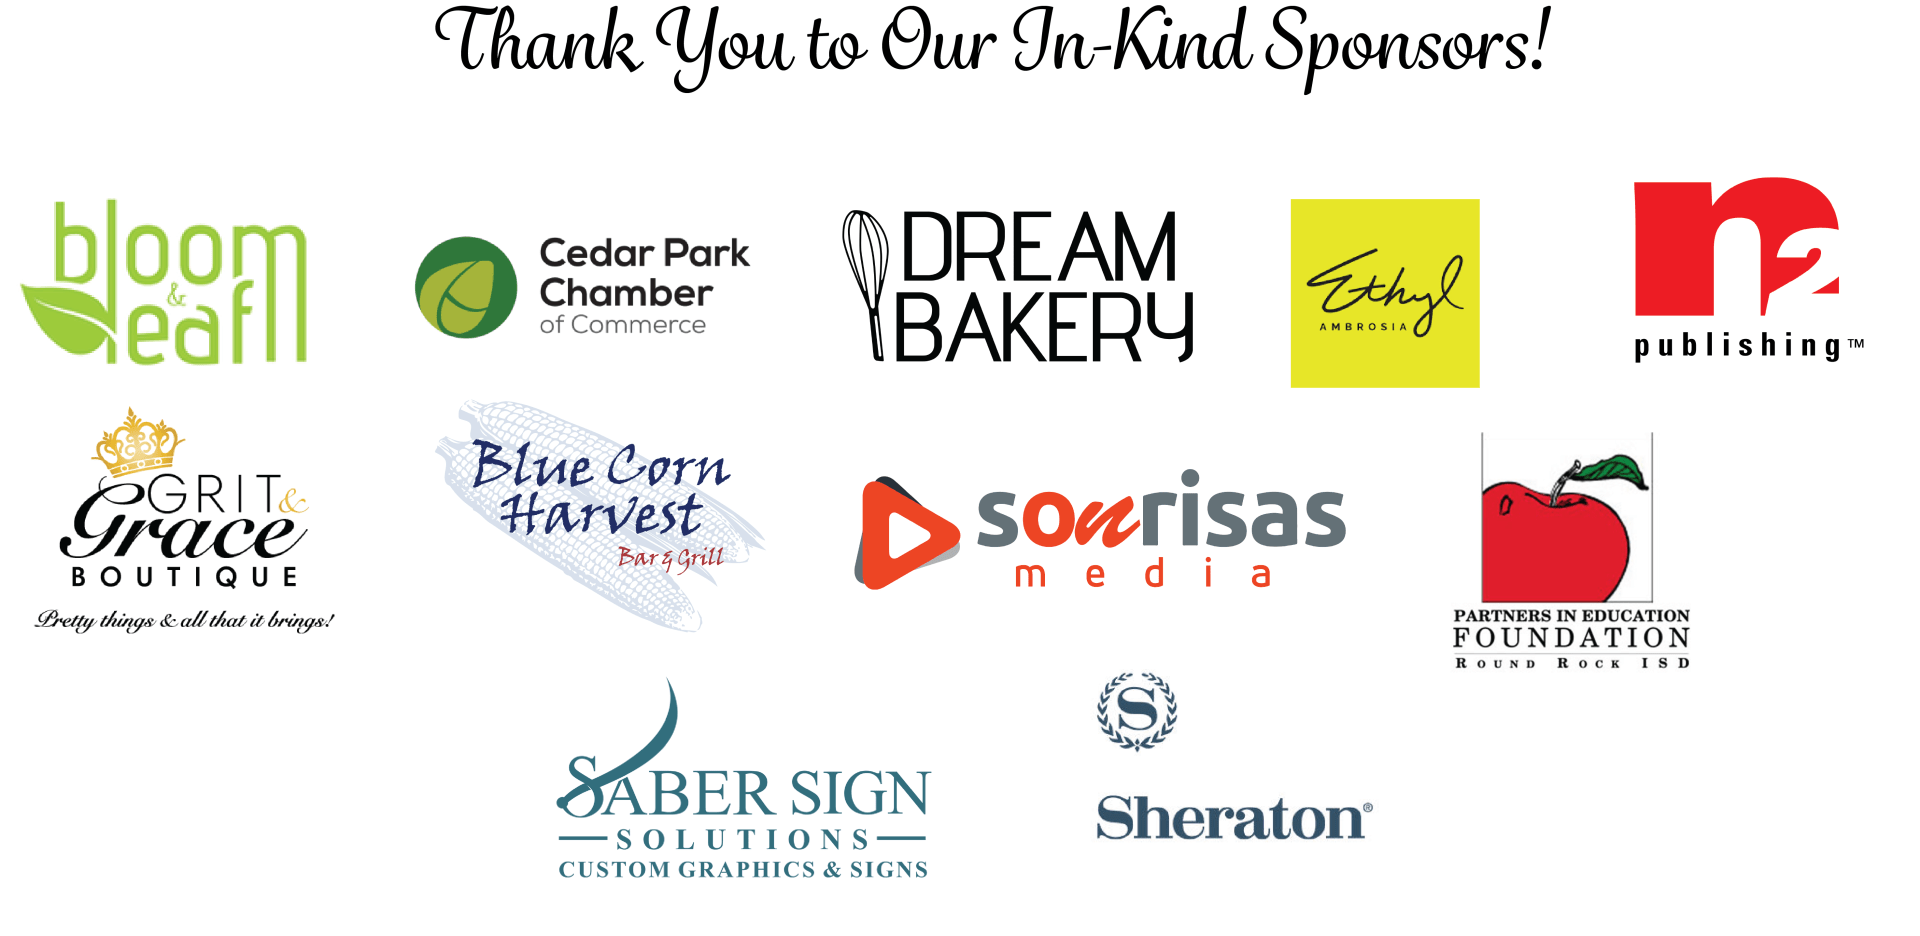 In-Kind-Sponsors-w1920.png